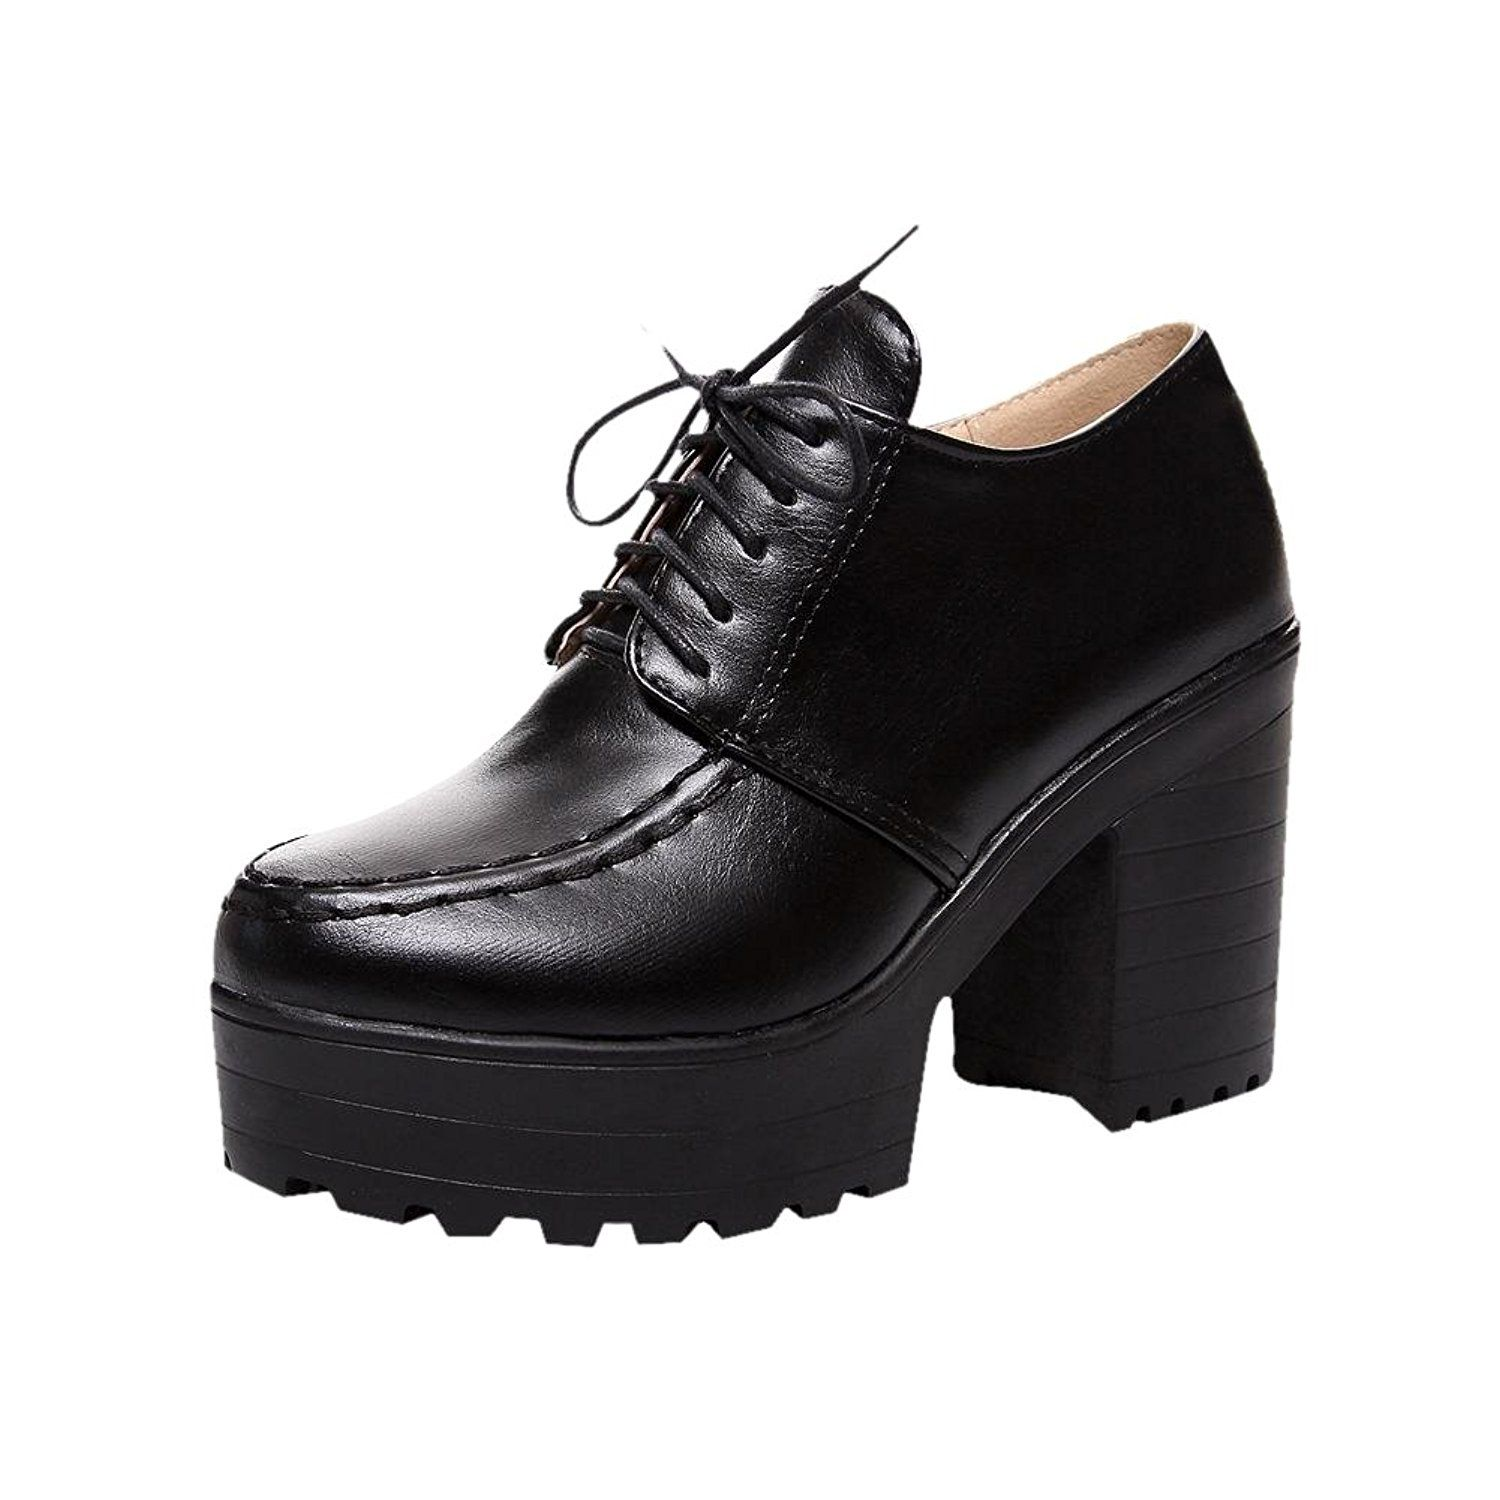 women's lace up retro fashion pu platform chunky high heel oxfords shoes ankle boots